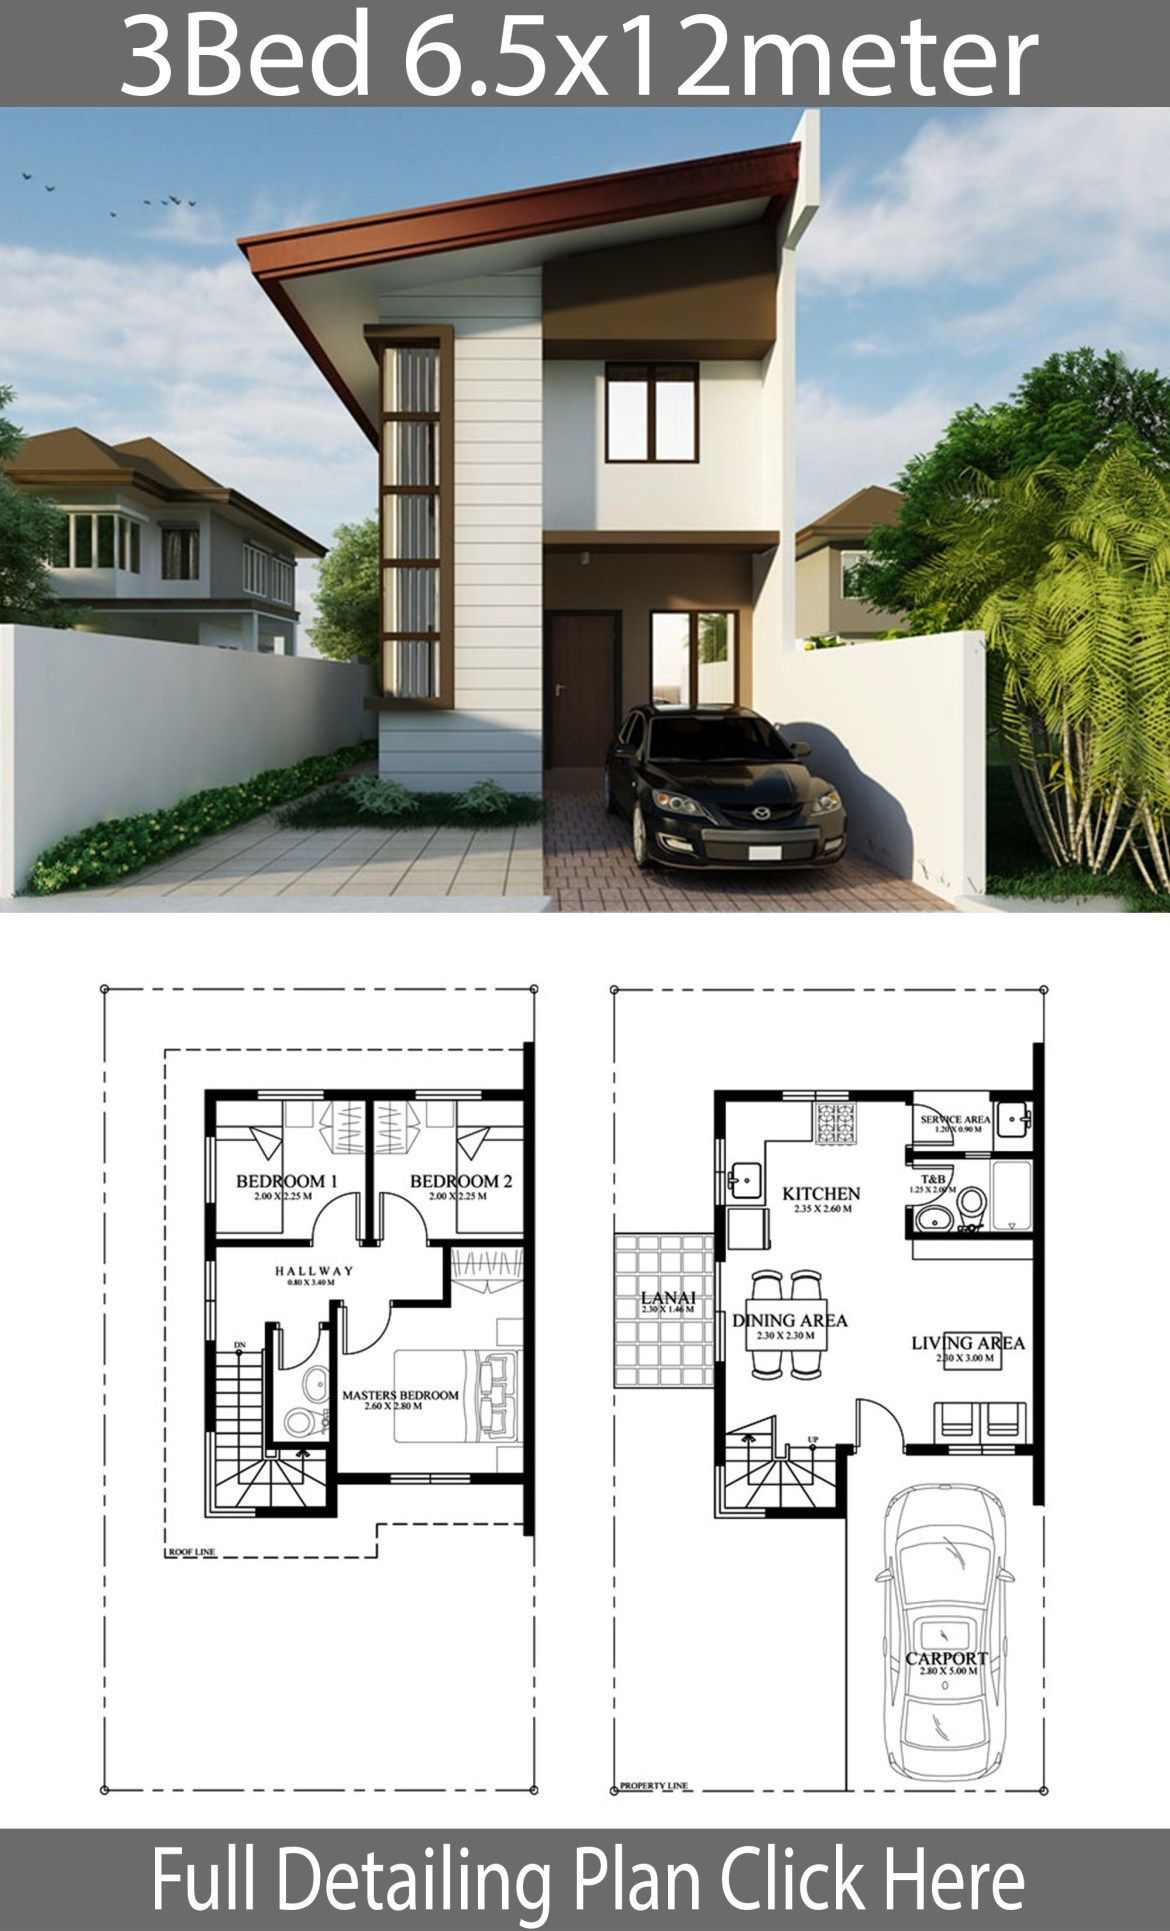 Small Home Design Plan 6 5mx12m With 3 Bedrooms Home Planssearch Model House Plan Small House Design Plans Architectural House Plans